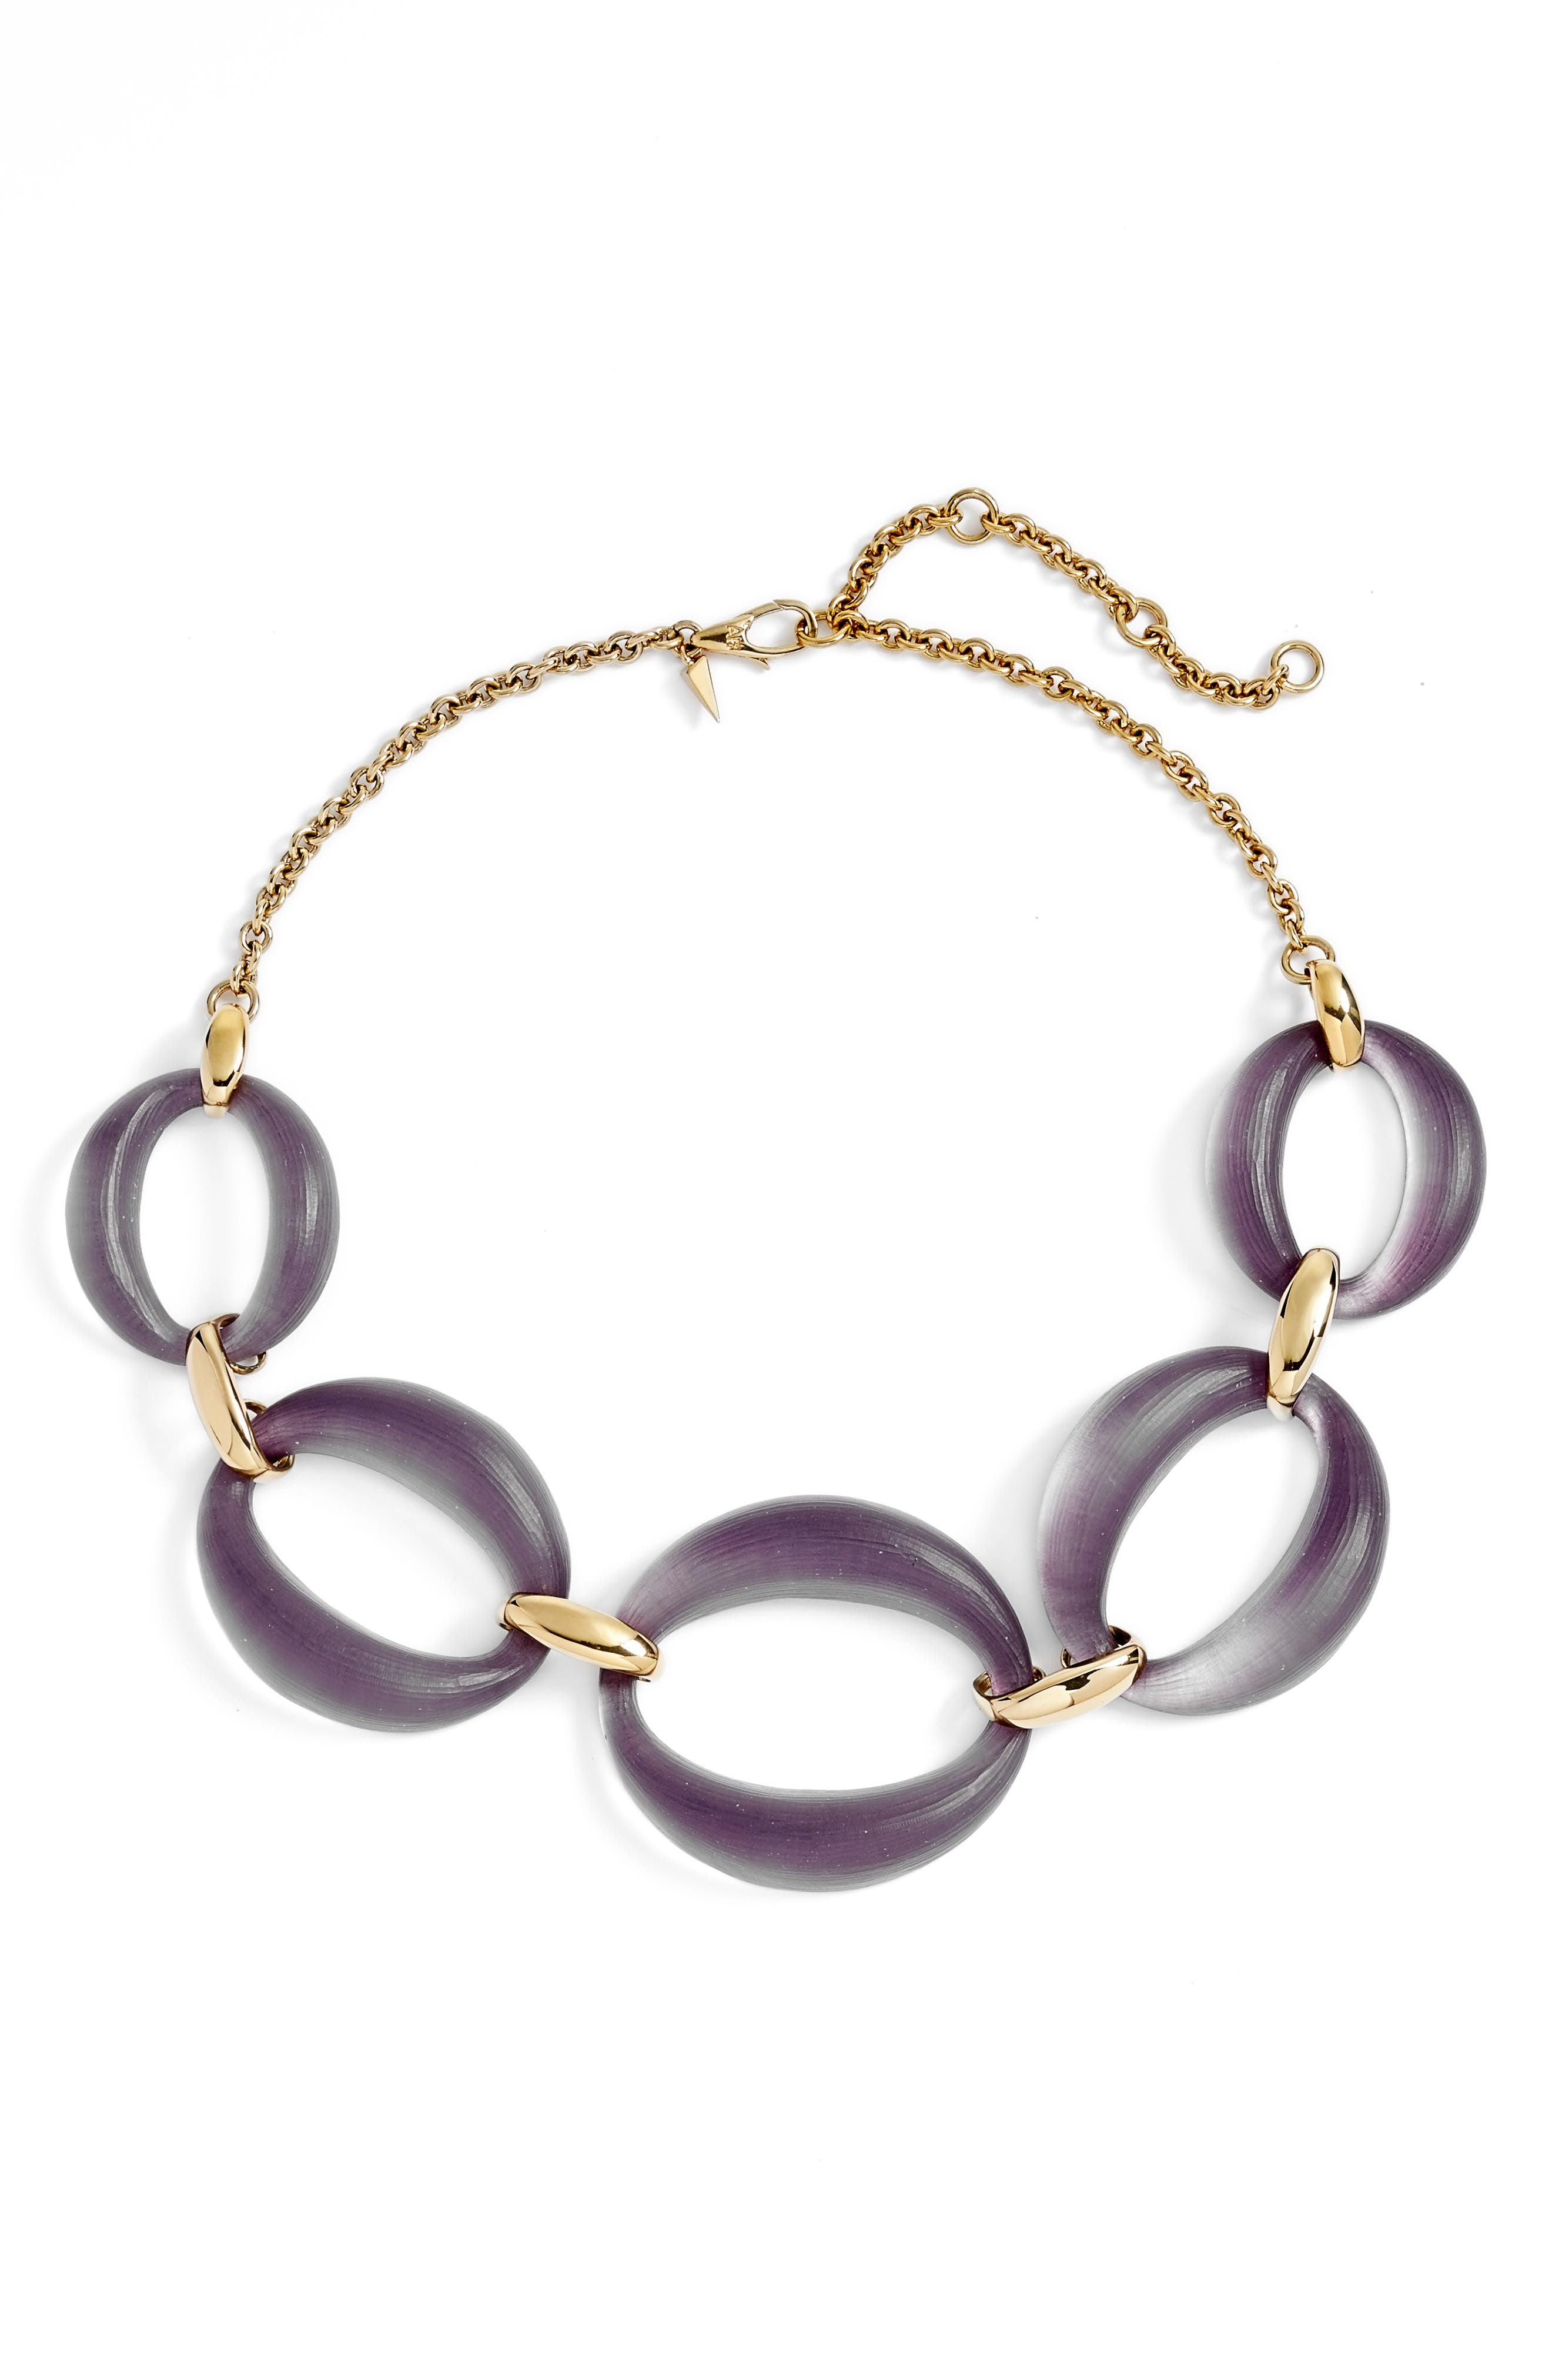 Main Image - Alexis Bittar Large Lucite® Link Frontal Necklace